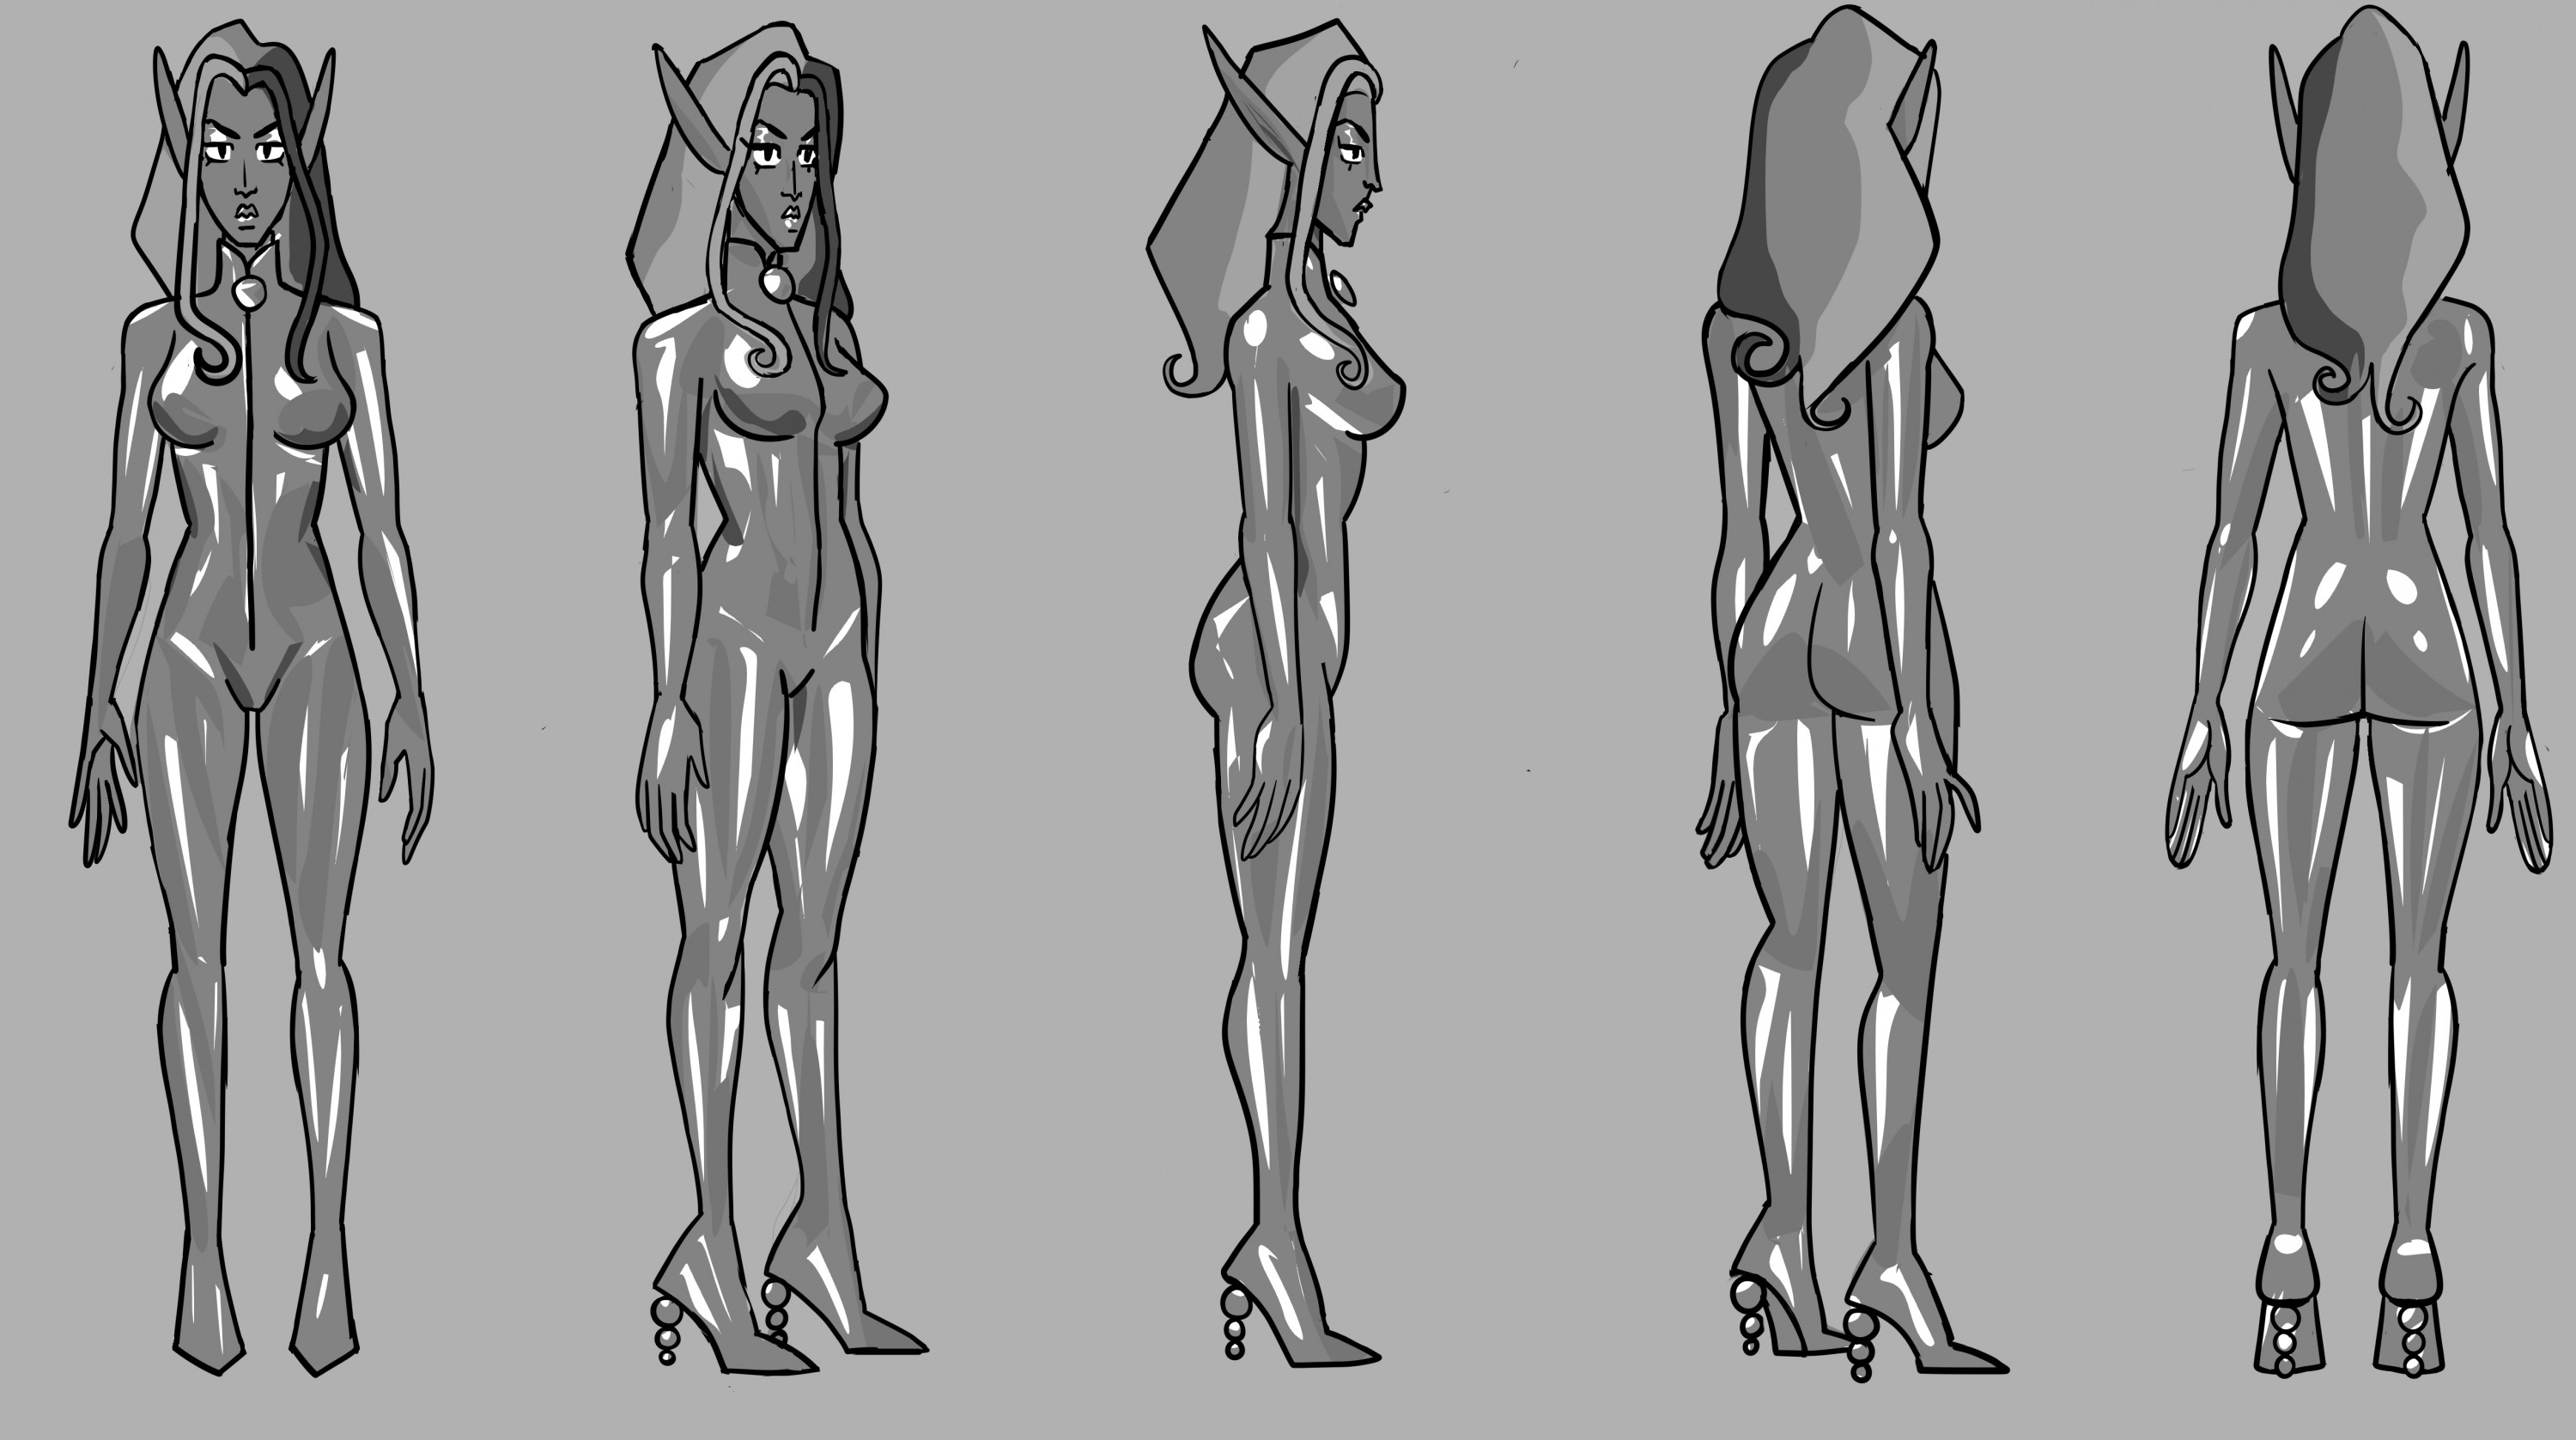 A tall woman with pointed ears, glossy eyelids, and three tone hair. She's wearing a shiny sheer catsuit that terminates in high heels. The zipper pull and heels are clear orbs. She's illustrated in five angles: including front, back, profile, and 3/4 vie